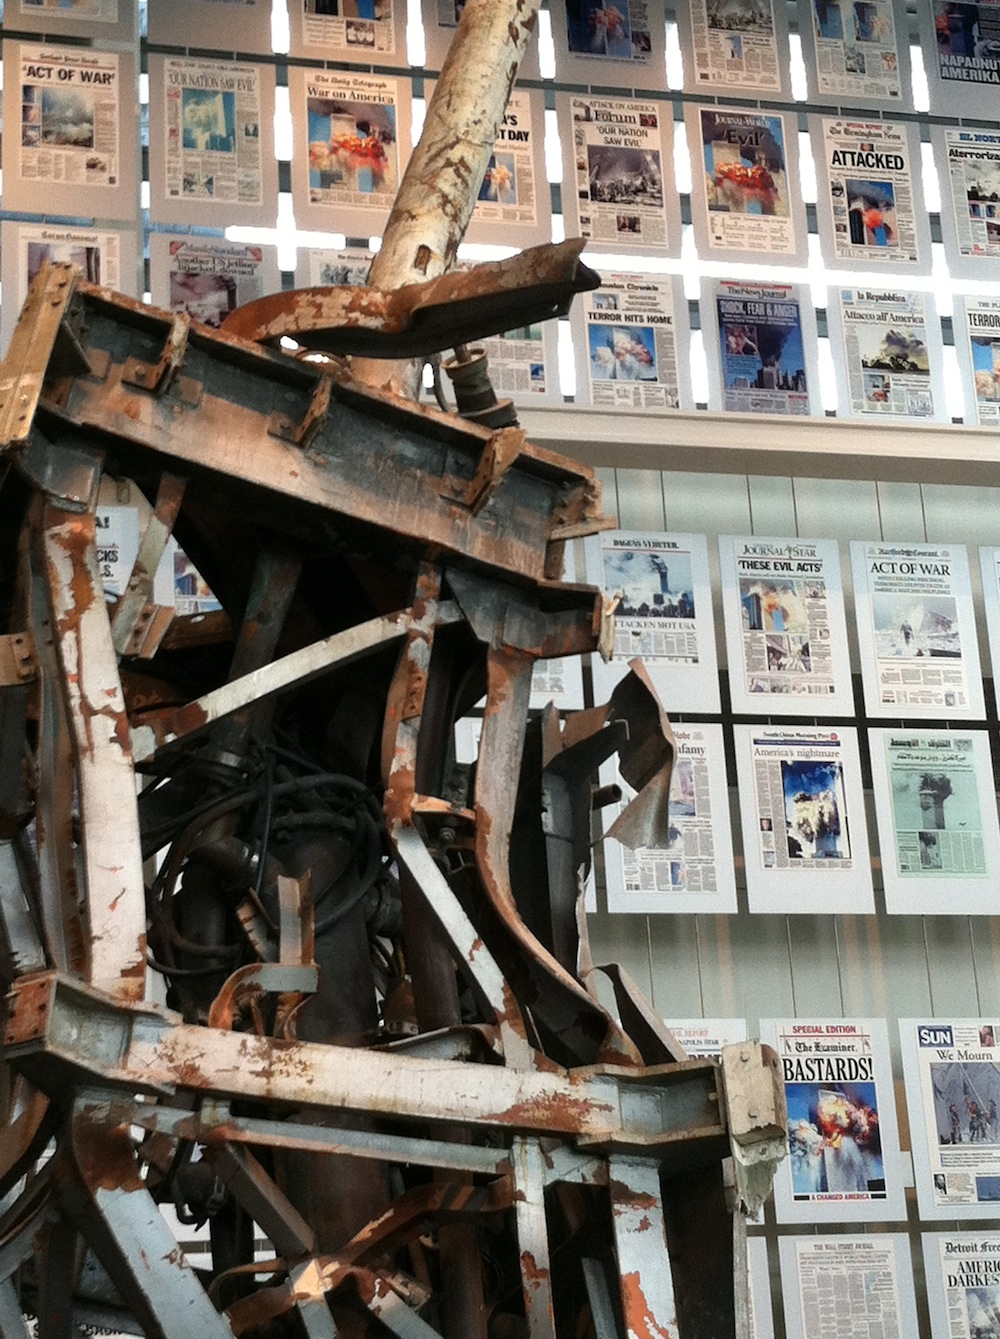 Demolished, charred, twisted piece of the radio tower from World Trade Center